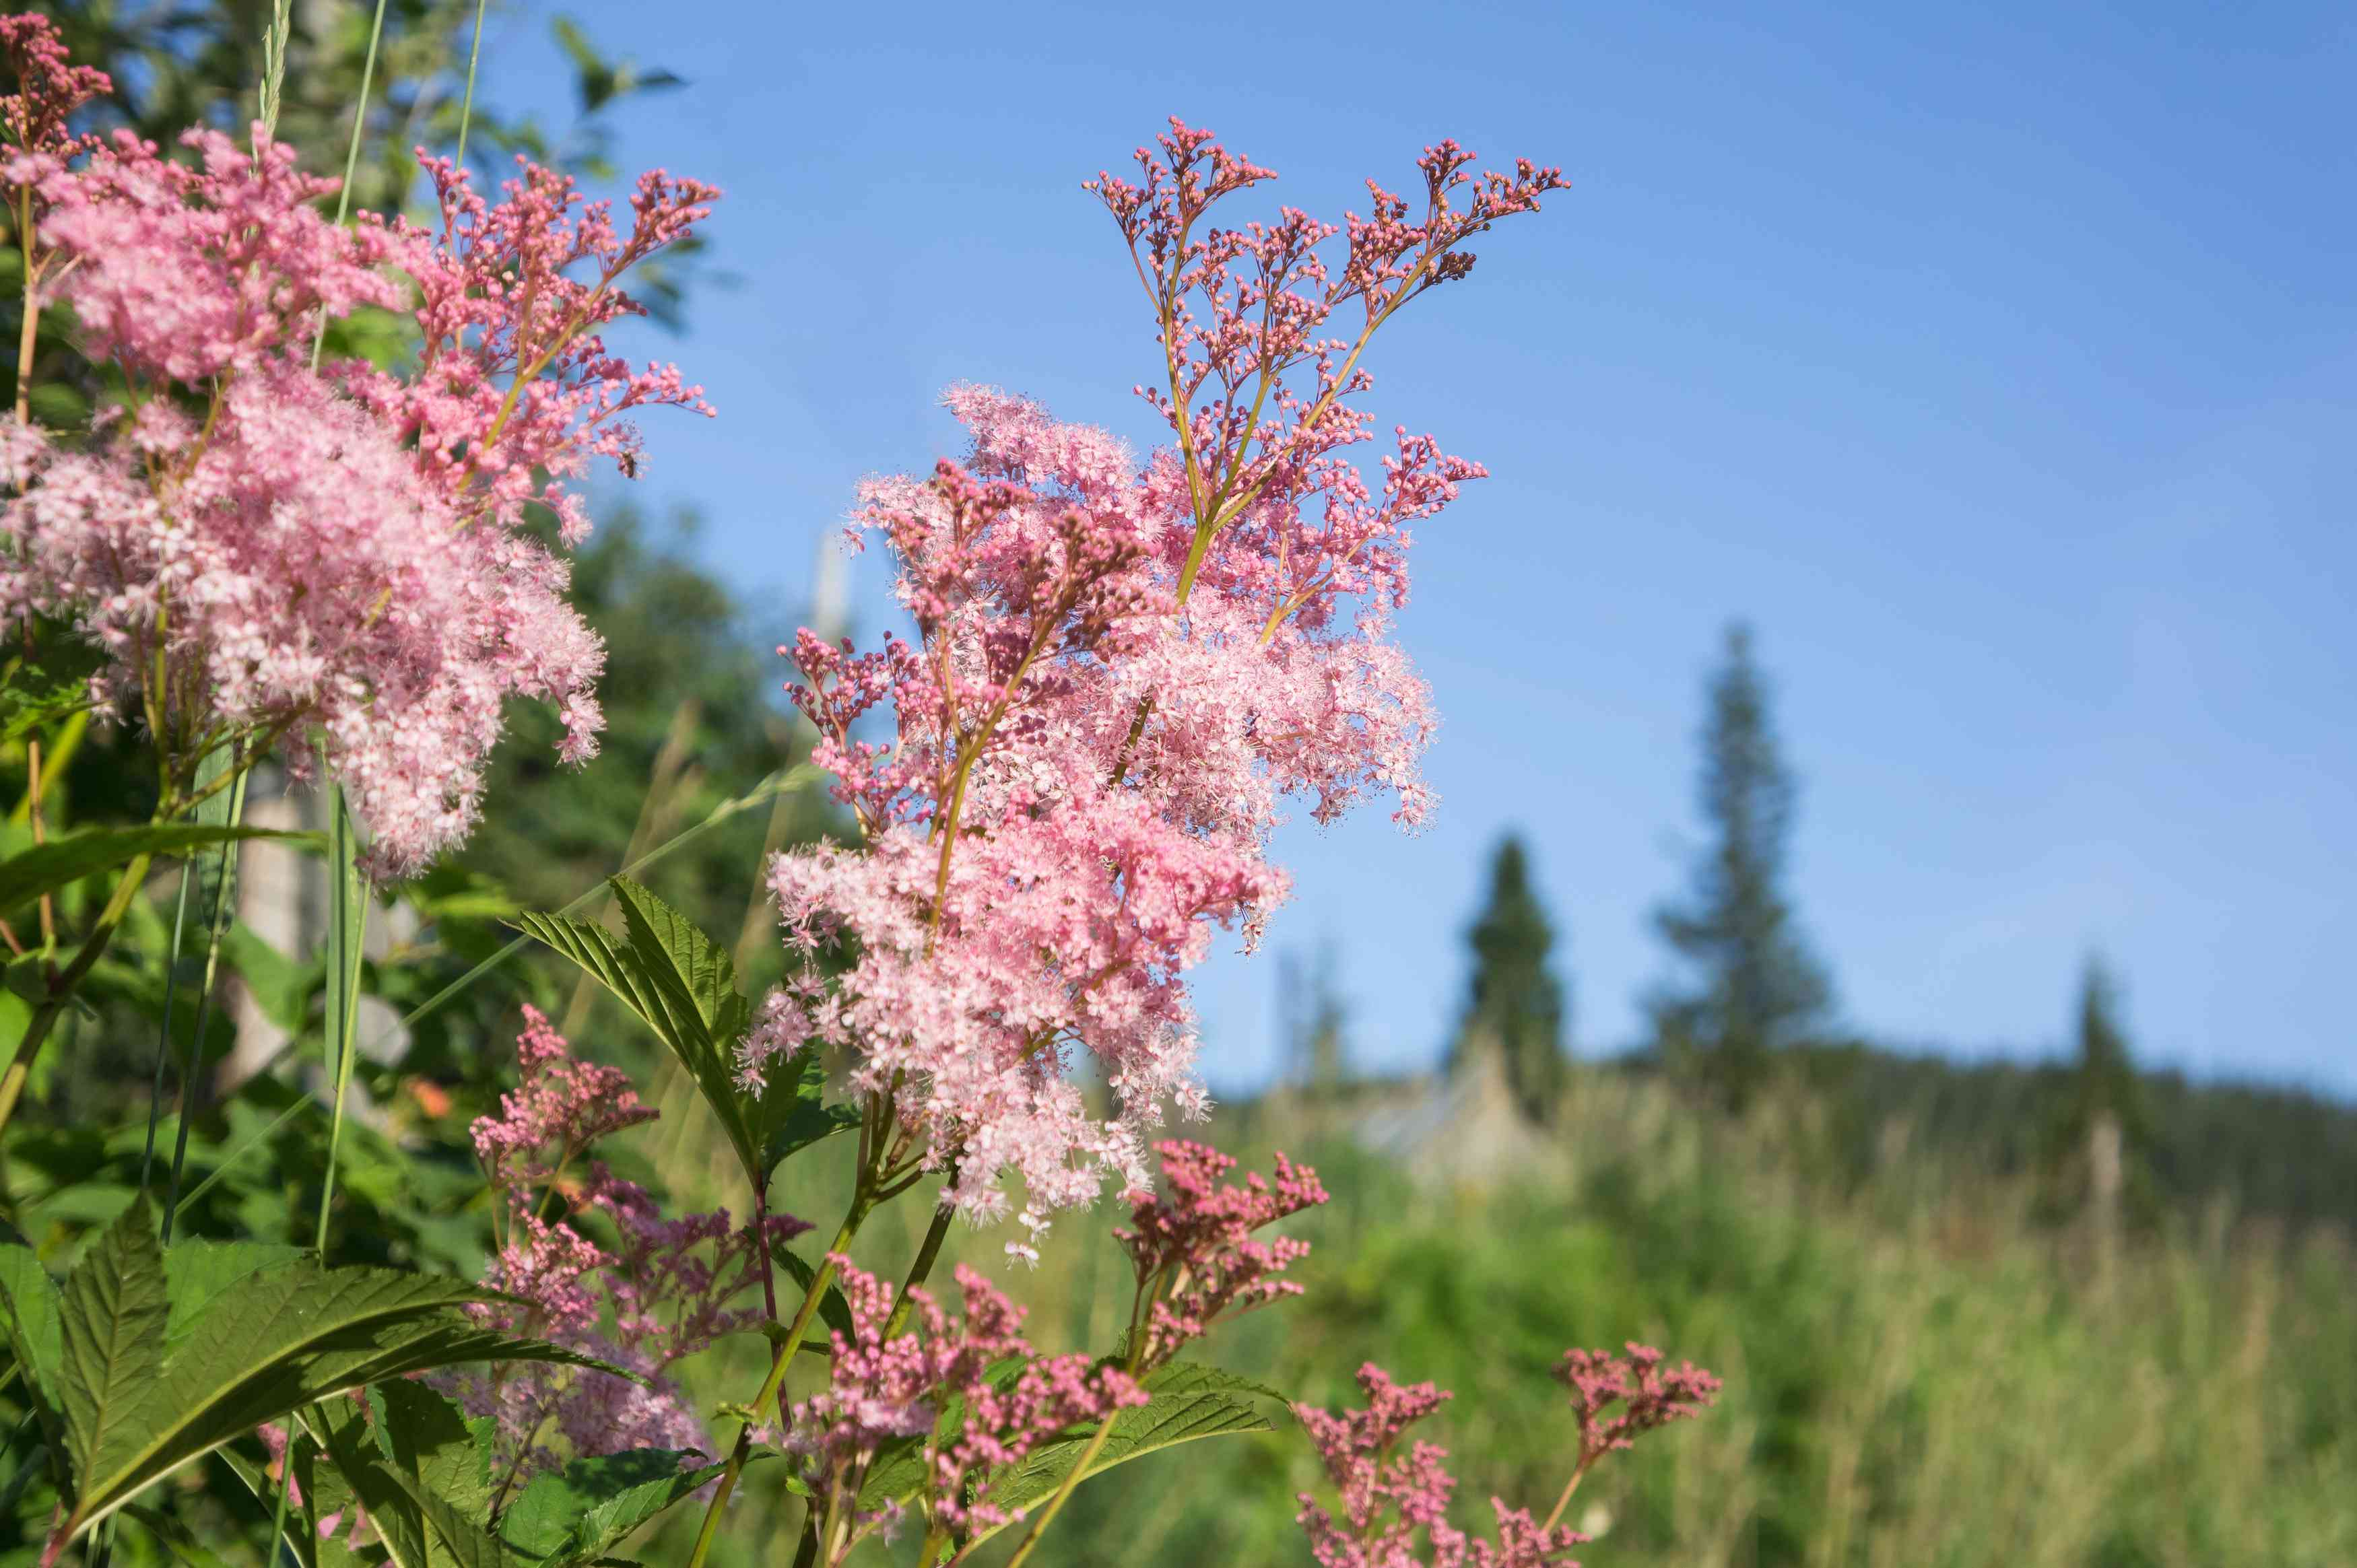 Pink flowers of Rodgersia pinnate bloom against the background of coniferous trees.